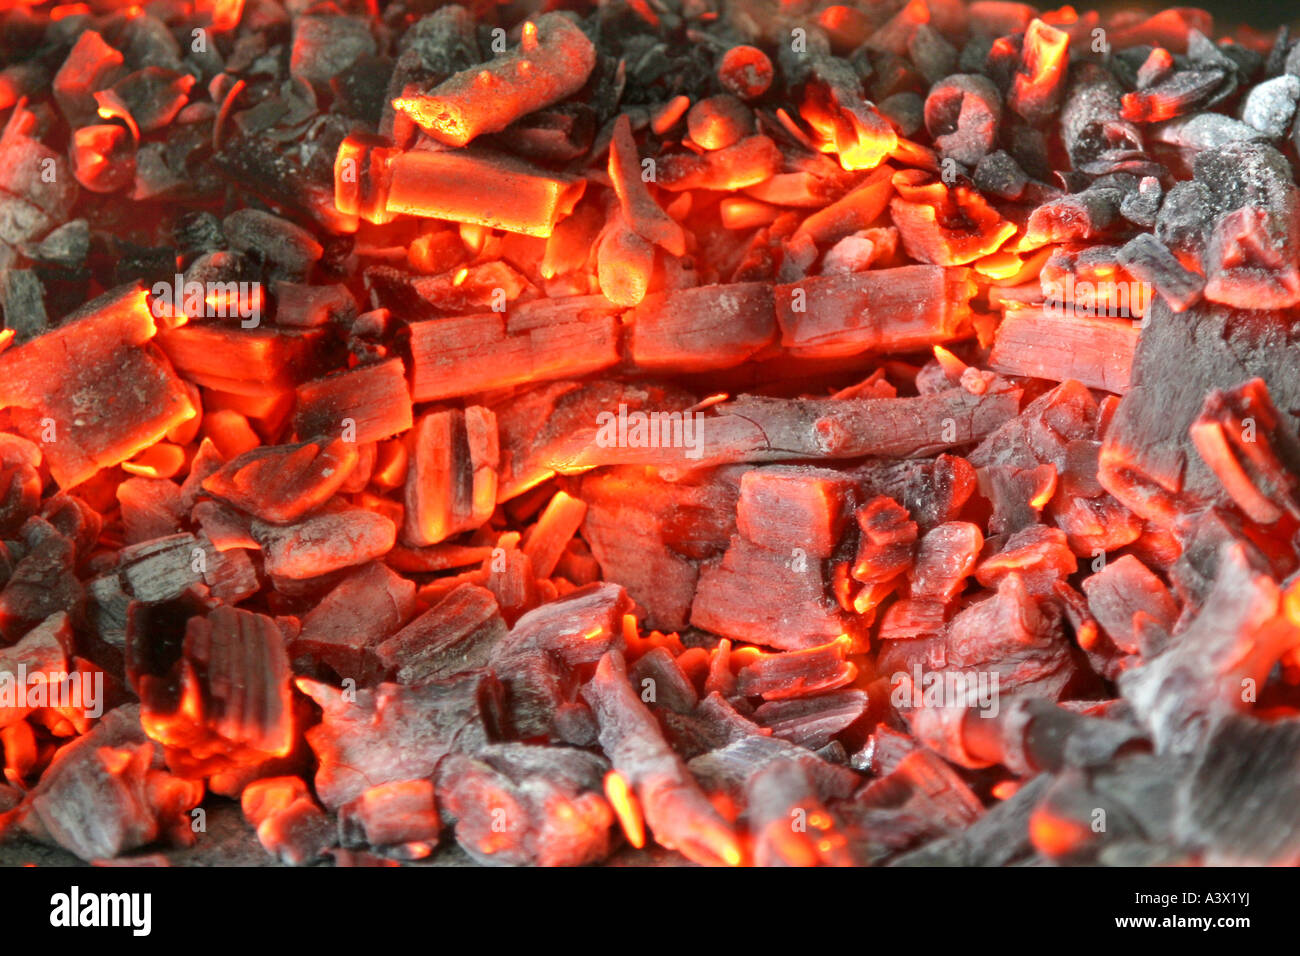 Coal And Wood Ash From Burning In An Oven Stock Photo